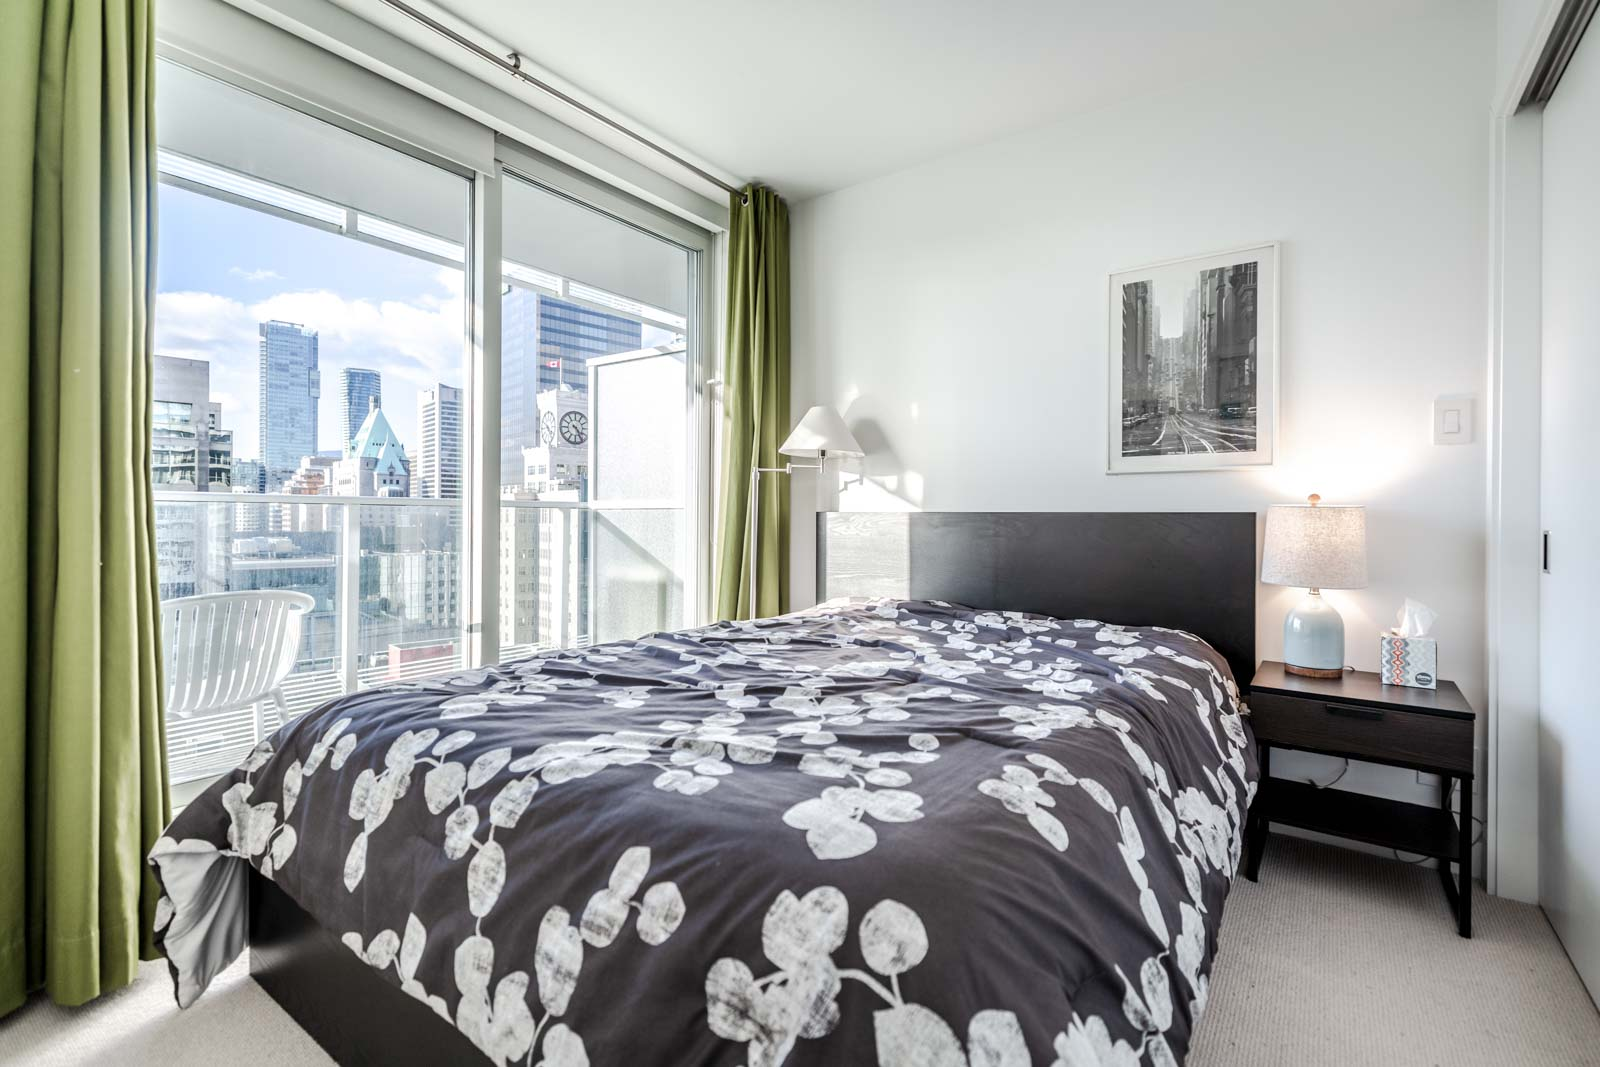 Bedroom with green curtains and black-and-white floral bedspread and view of Downtown Vancouver.